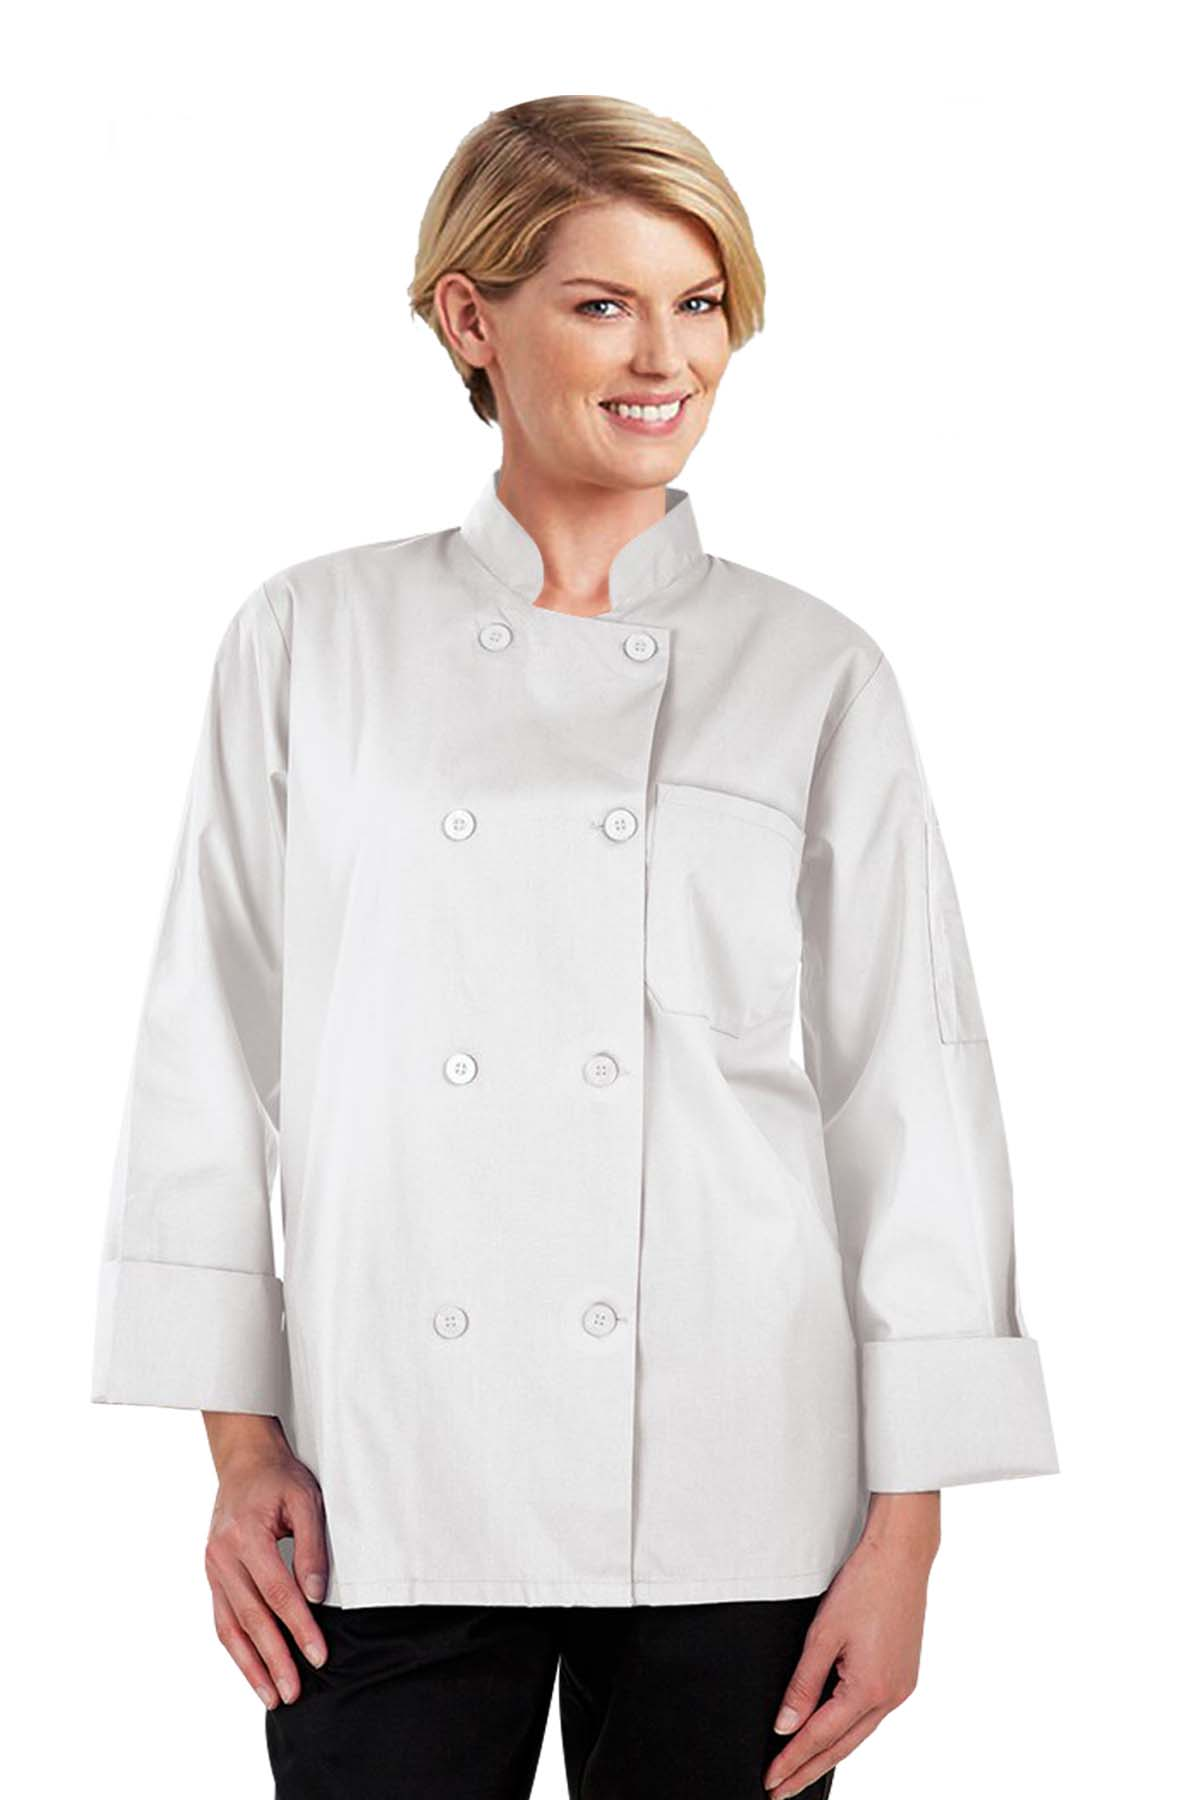 Poplin Women's Full Sleeve Chef Coat With 1 Chest pocket and 1 Sleeve Pocket - Button Front Closure (48 perc cotton 52 perc polyester Light Weight poplin)